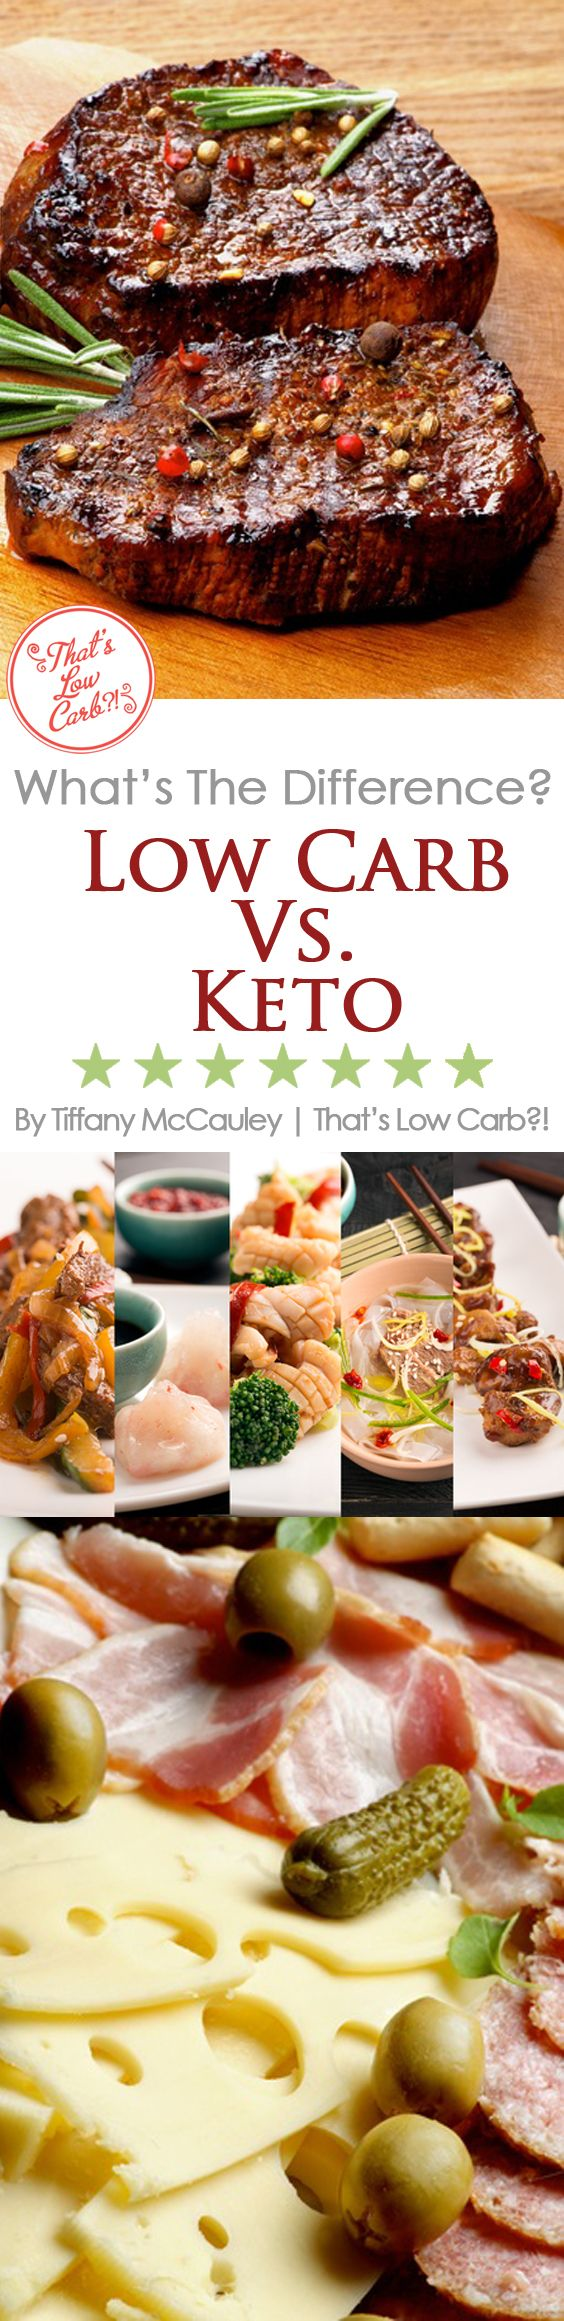 If you don't know the difference between low carb eating and a ketogenic diet, this article should help clear things up!